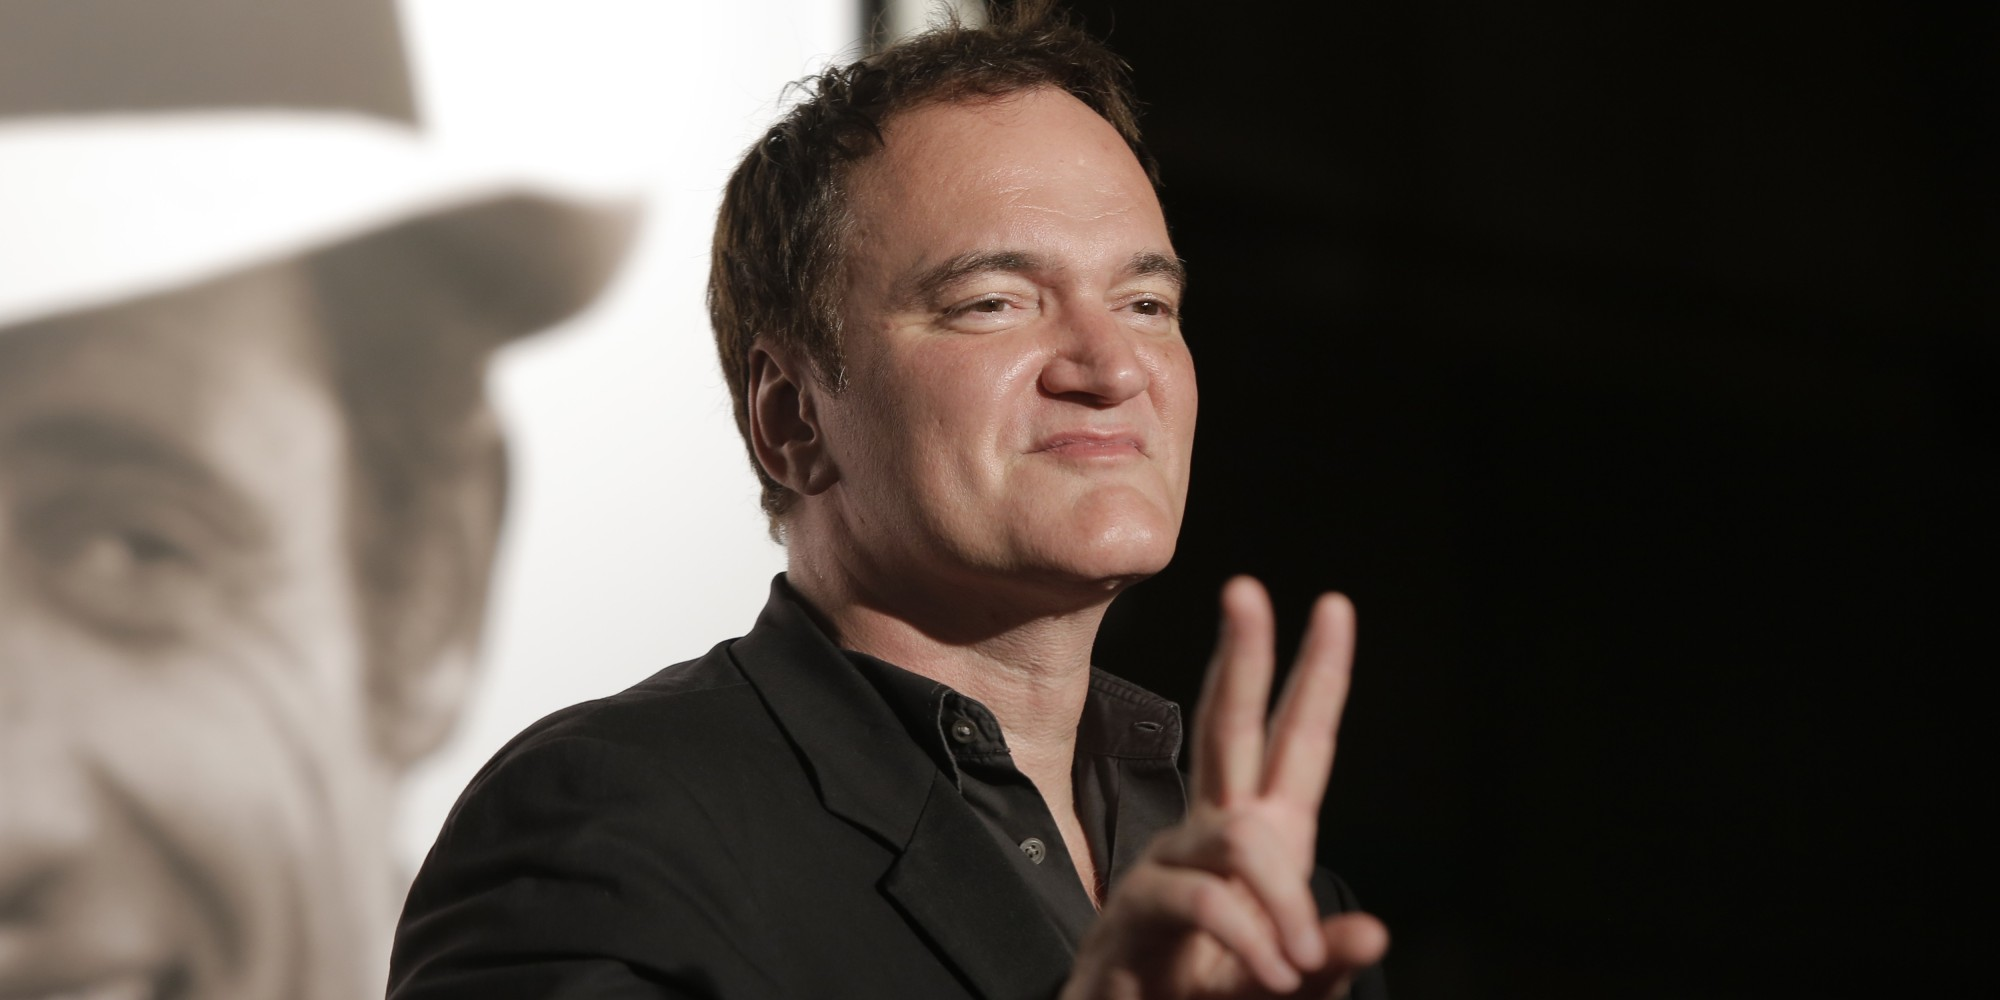 Director Quentin Tarantino gestures as he arrives at the 5th edition of the Lumiere Festival, in Lyon, central France, Monday, Oct. 14, 2013. (AP Photo/Laurent Cipriani)